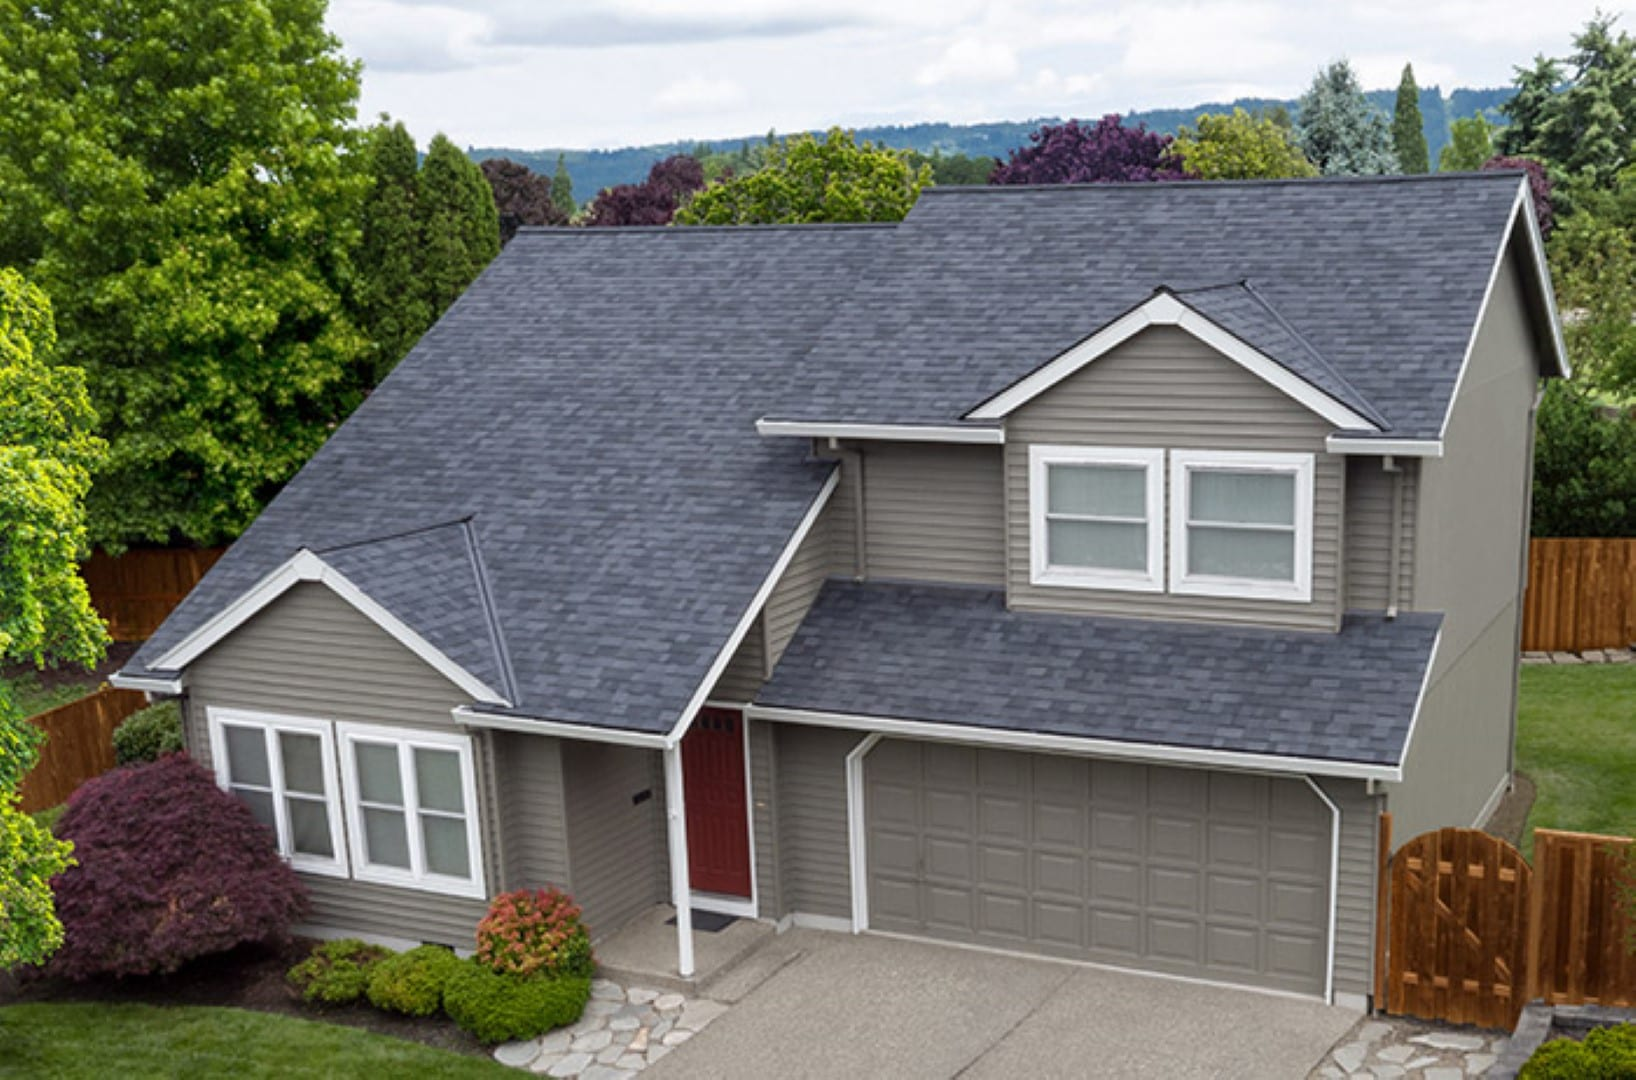 New Malarkey Roof from above in Portland neighborhood